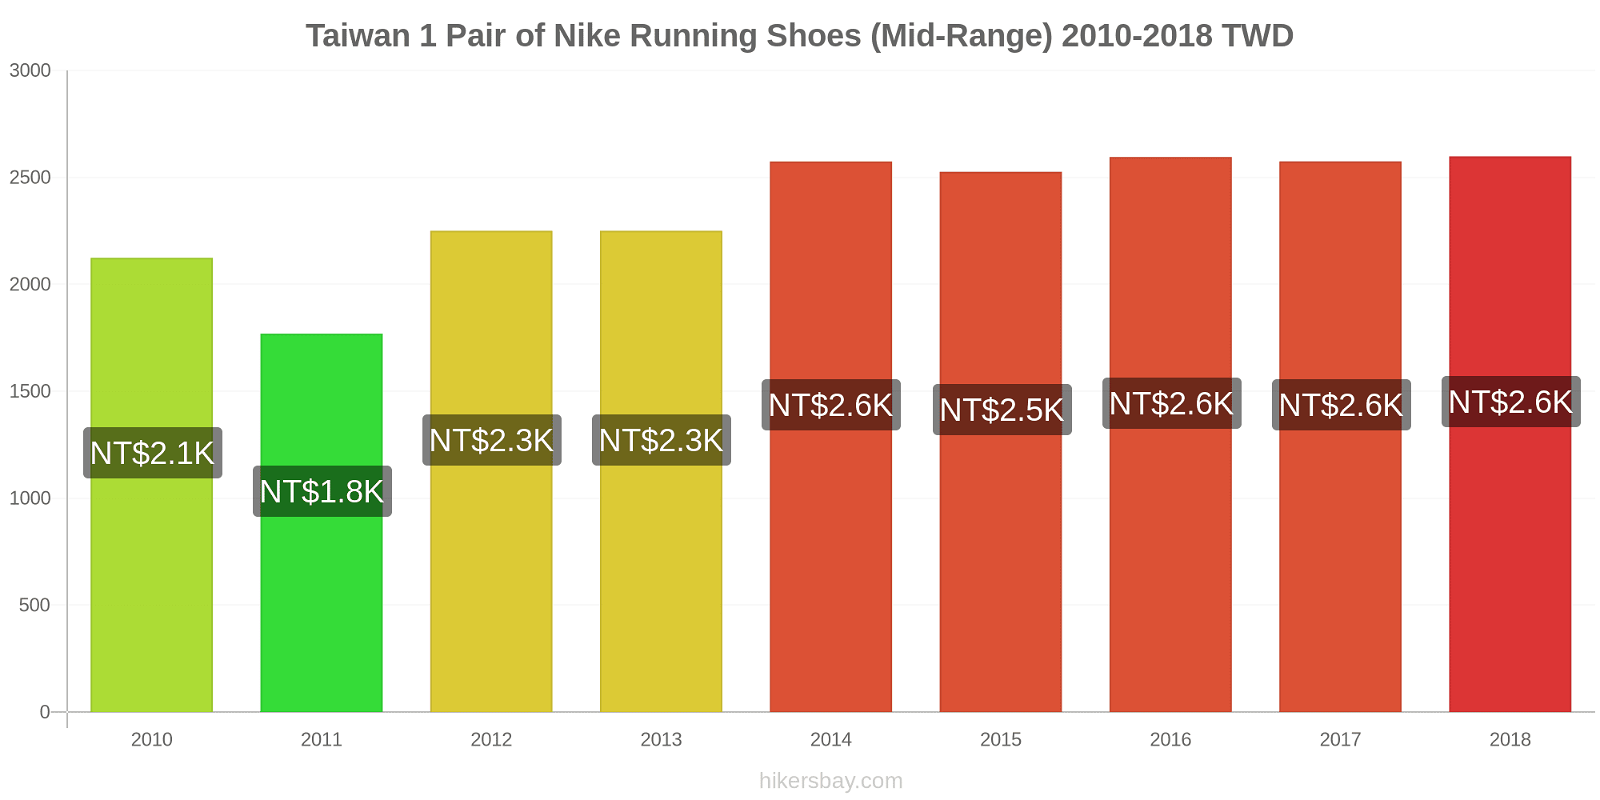 Taiwan price changes 1 Pair of Nike Running Shoes (Mid-Range) hikersbay.com